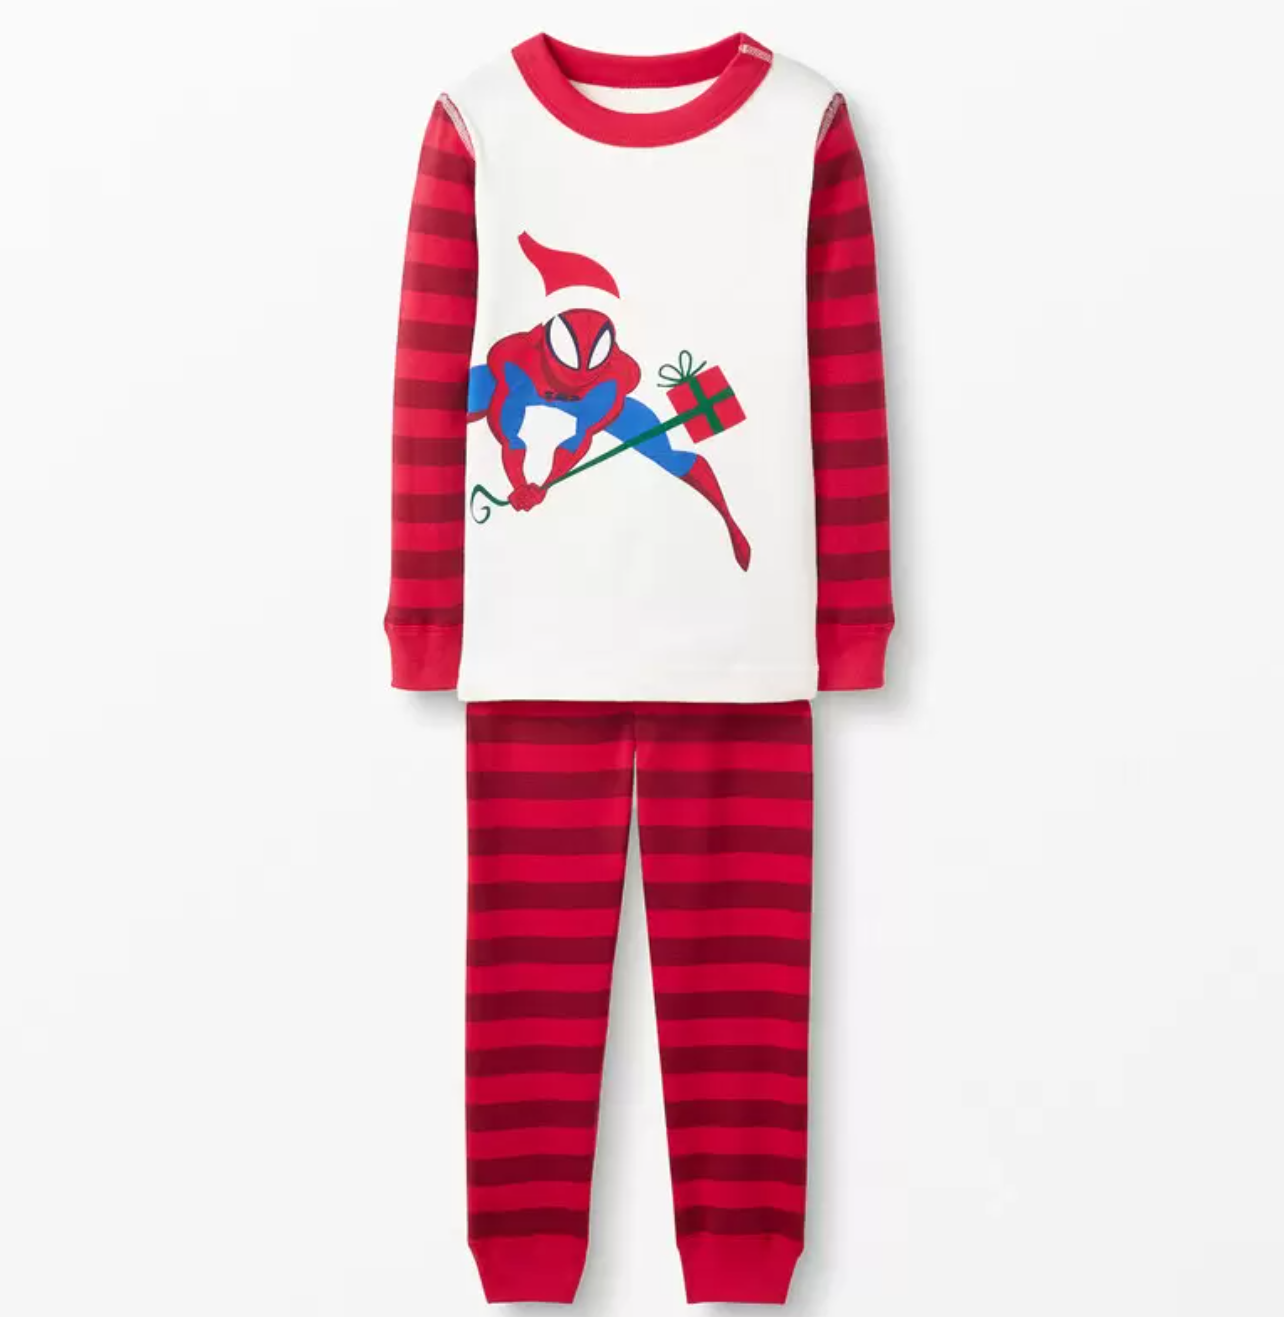 Hanna Andersson: Up to 30% off Pajamas